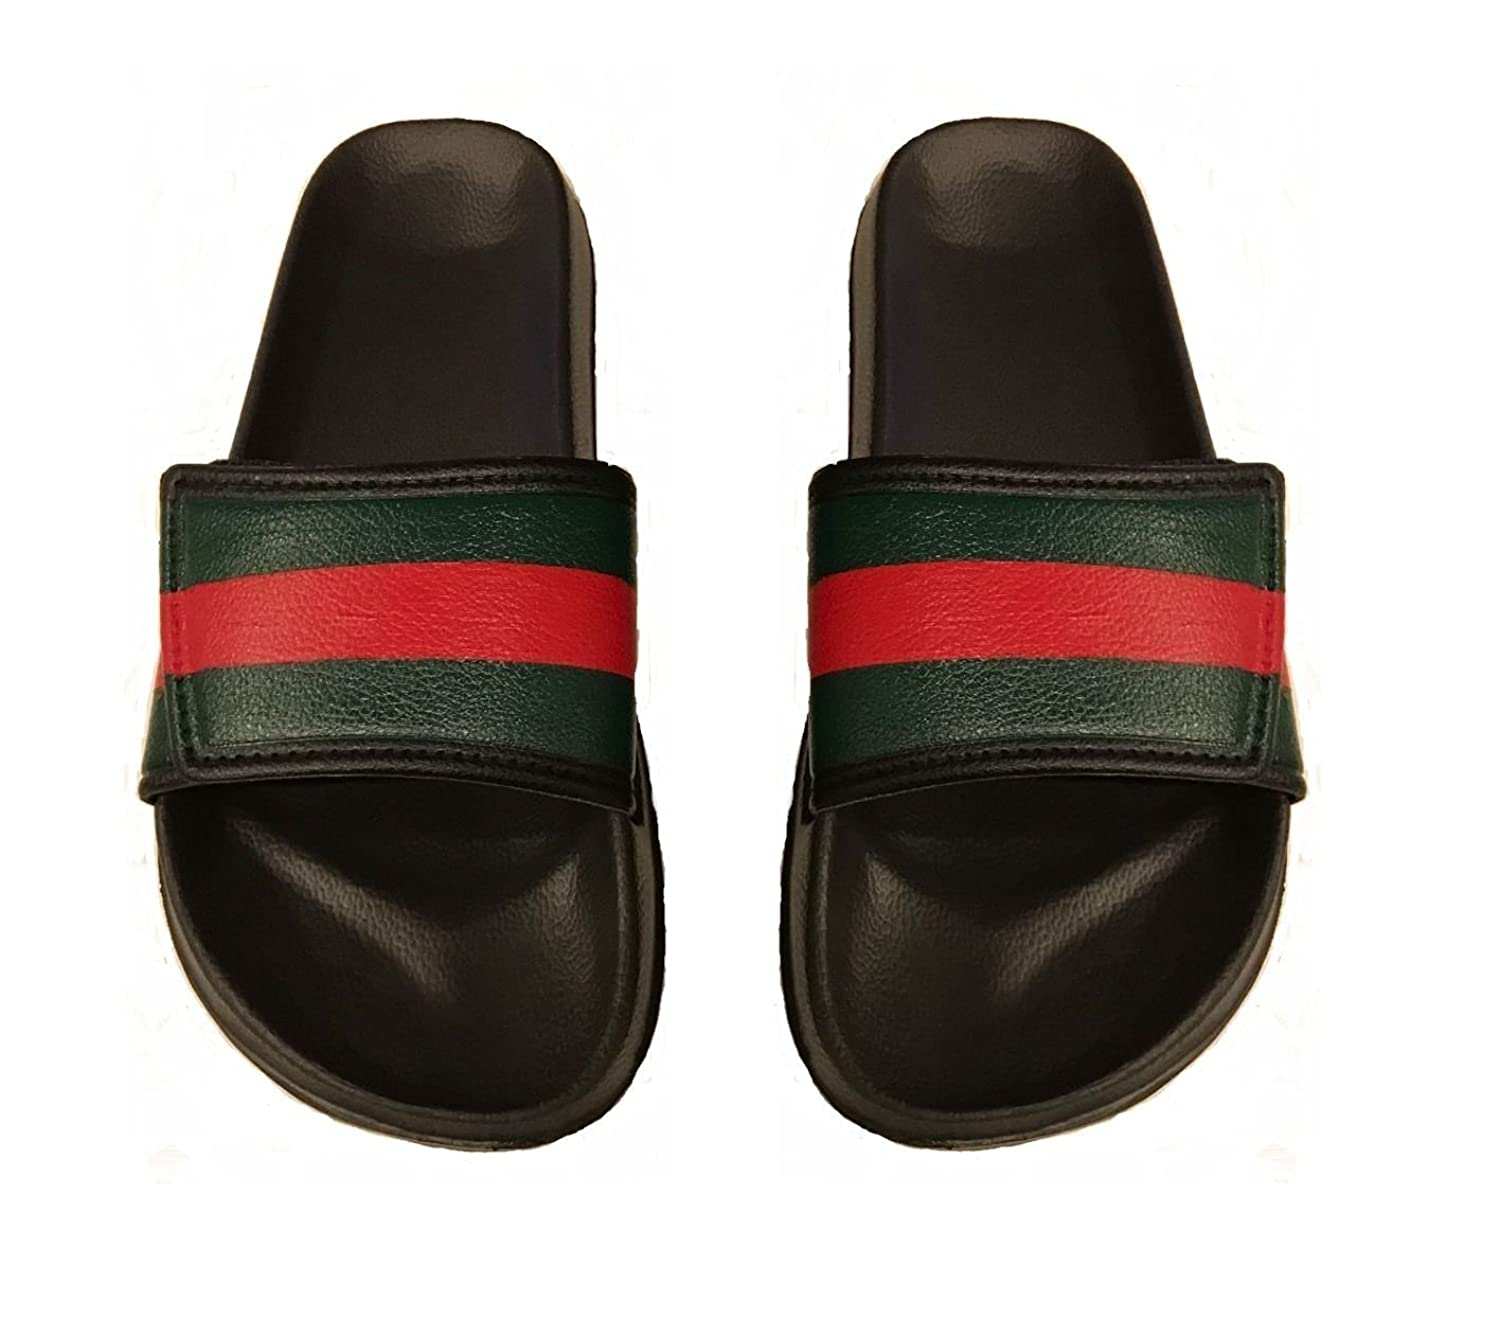 Mens Striped Style Slide Sandals Sizes 9,10,11